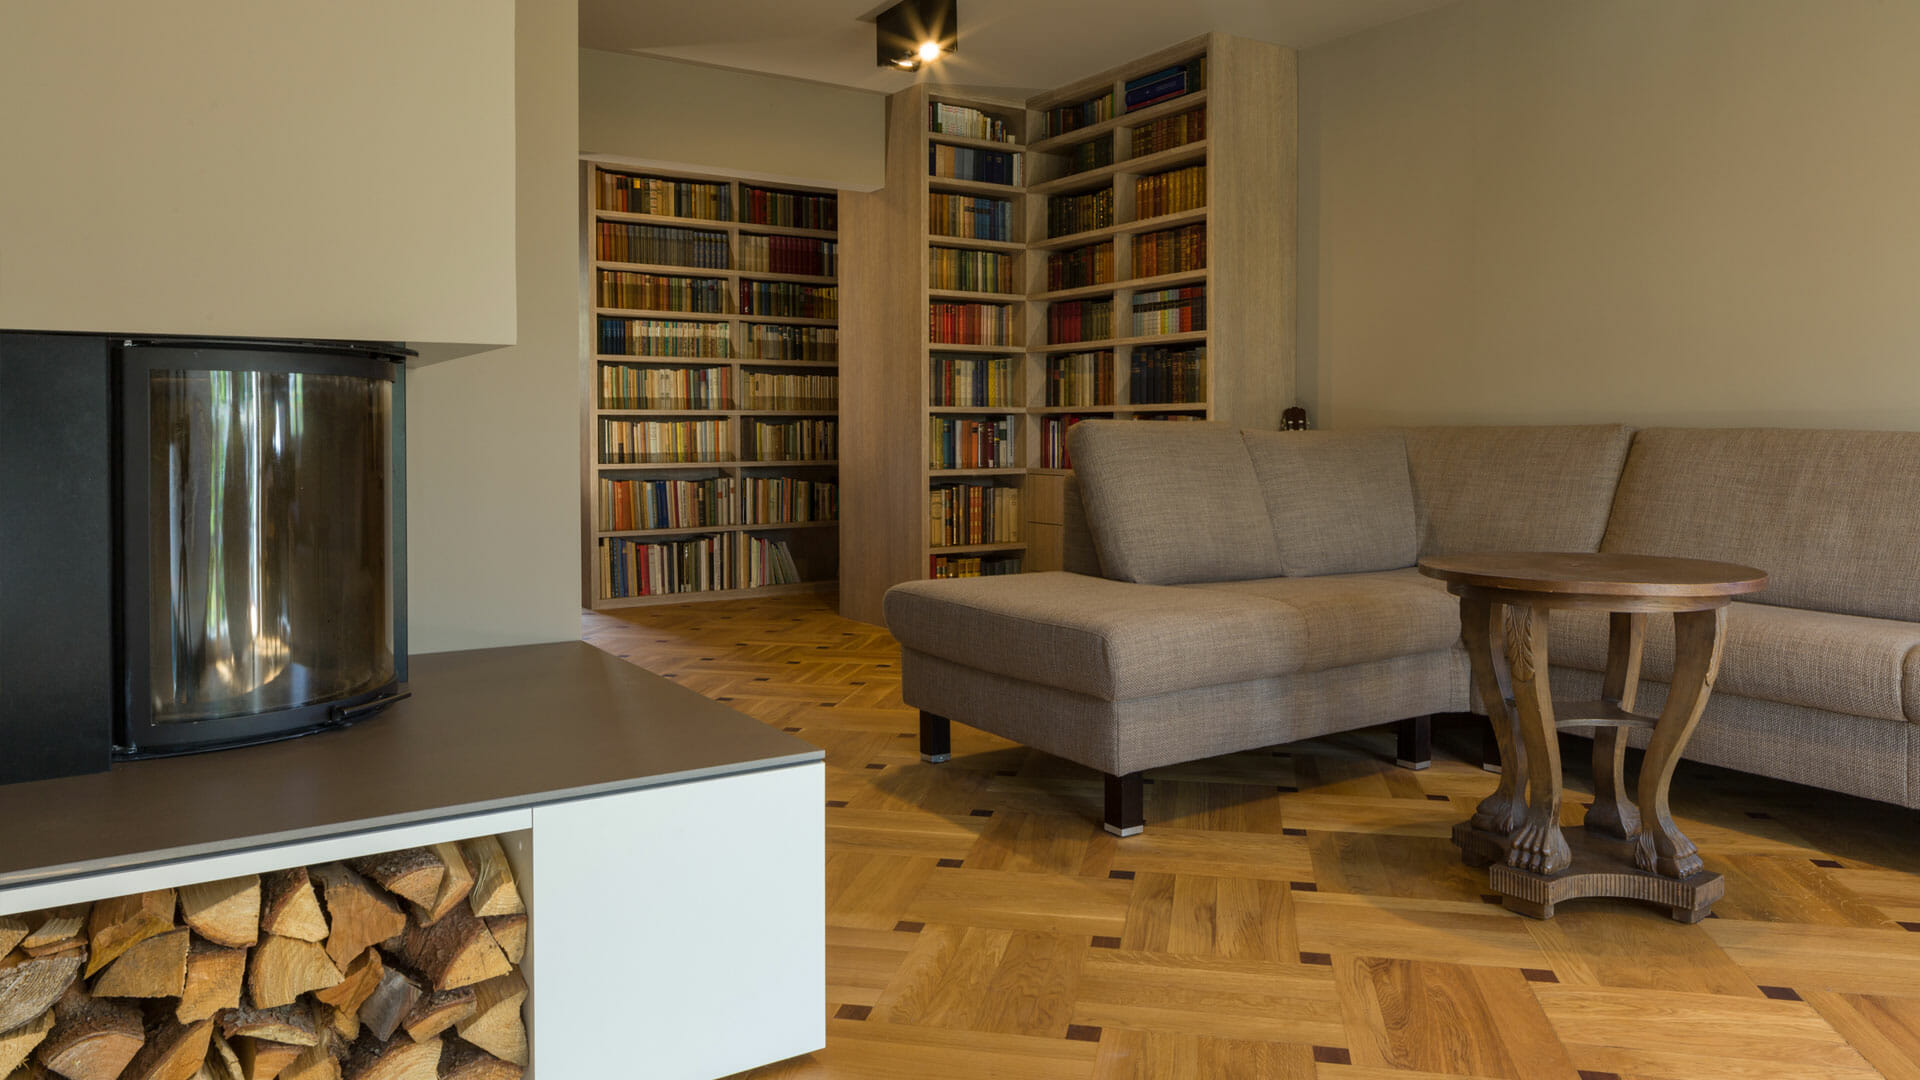 Full Size of Olympo Wohnzimmer Kamin Wohnzimmer Kamin Ohne Abzug Wohnzimmer Kamin Fernseher Wohnzimmer Kamin Raumteiler Wohnzimmer Wohnzimmer Kamin